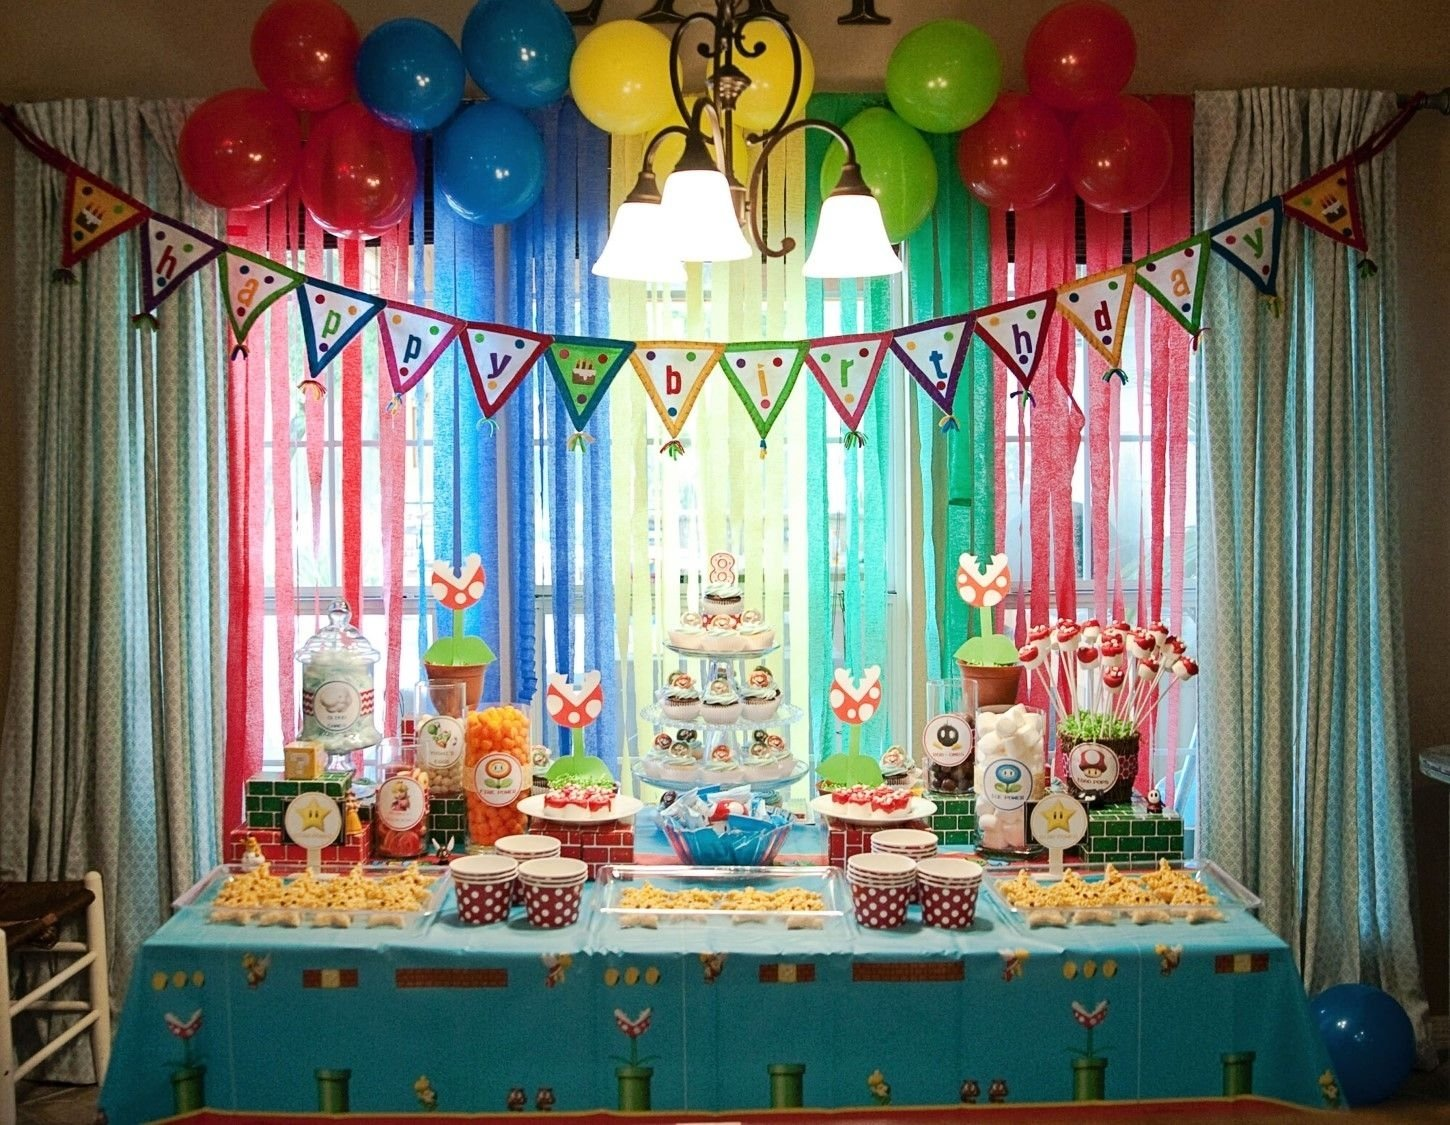 10 Fabulous Super Mario Brothers Birthday Party Ideas mario birthday party google search birthday party ideas 2020